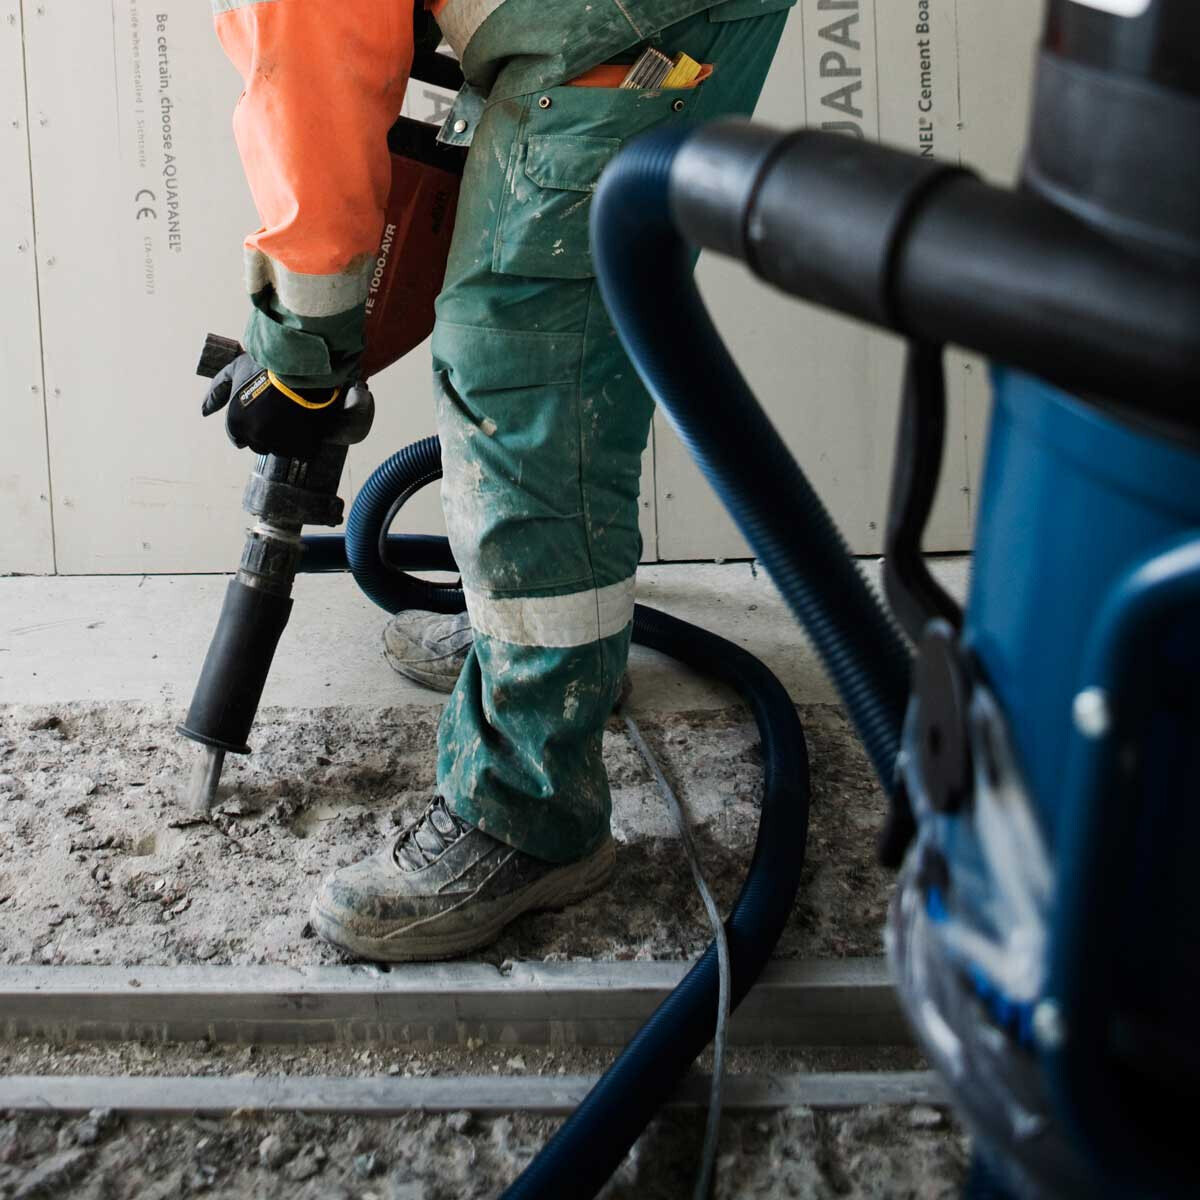 Suction Casing for Hammer Drills